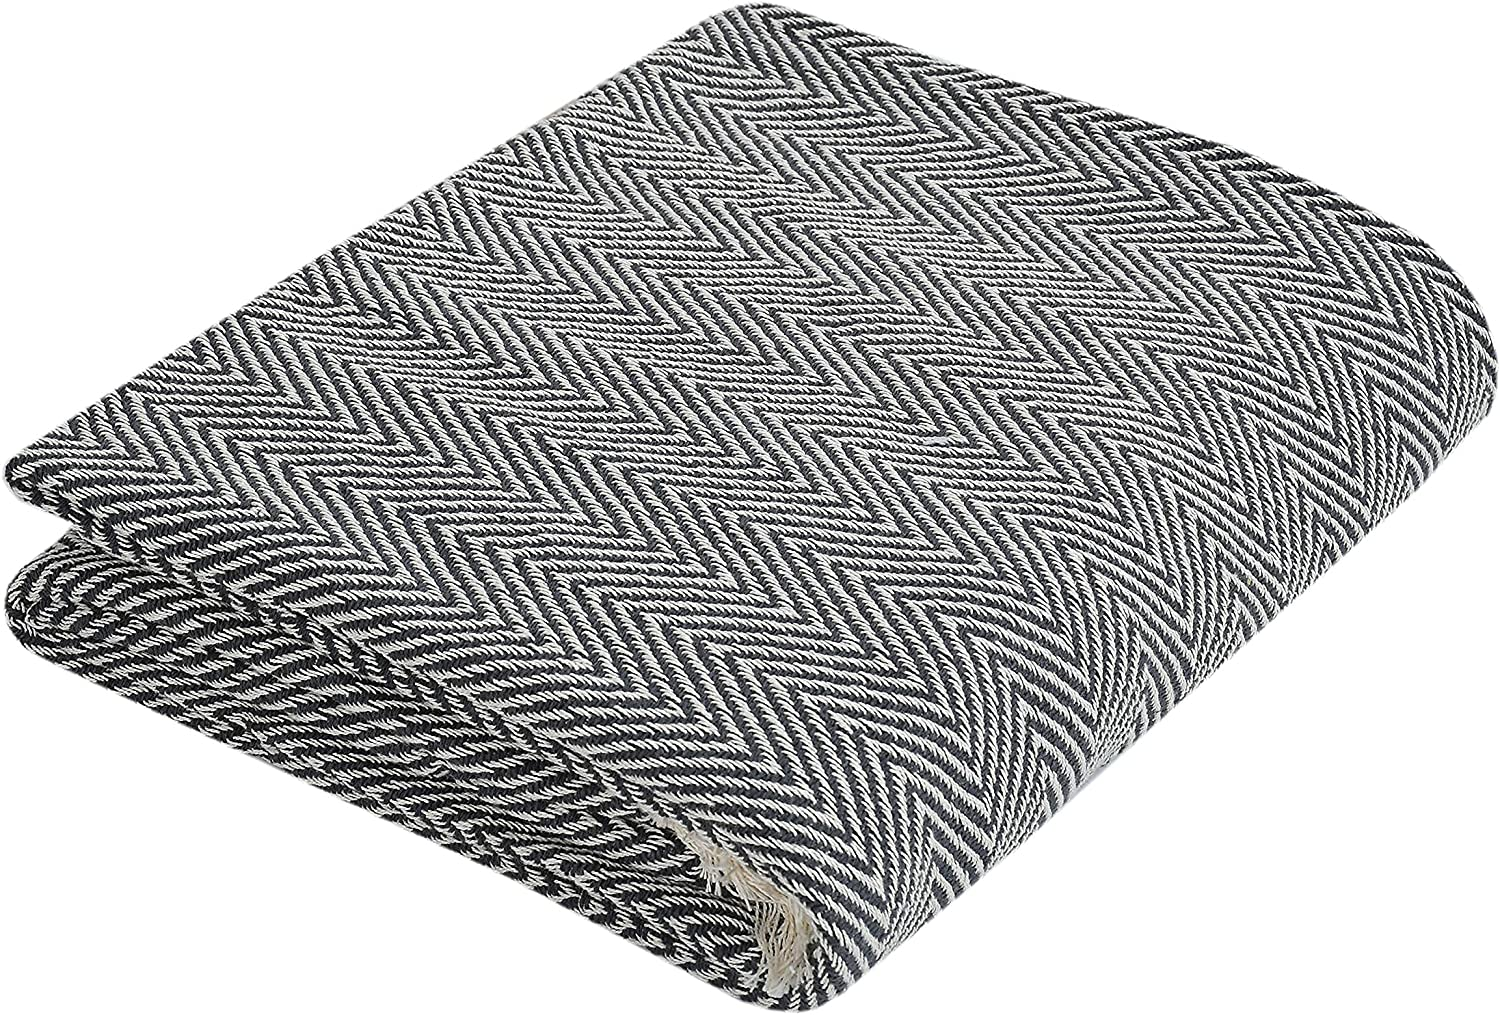 CasaTouch 100% Cotton Ranking TOP13 Blanket Throw Warm Breathable Soft All Translated Se